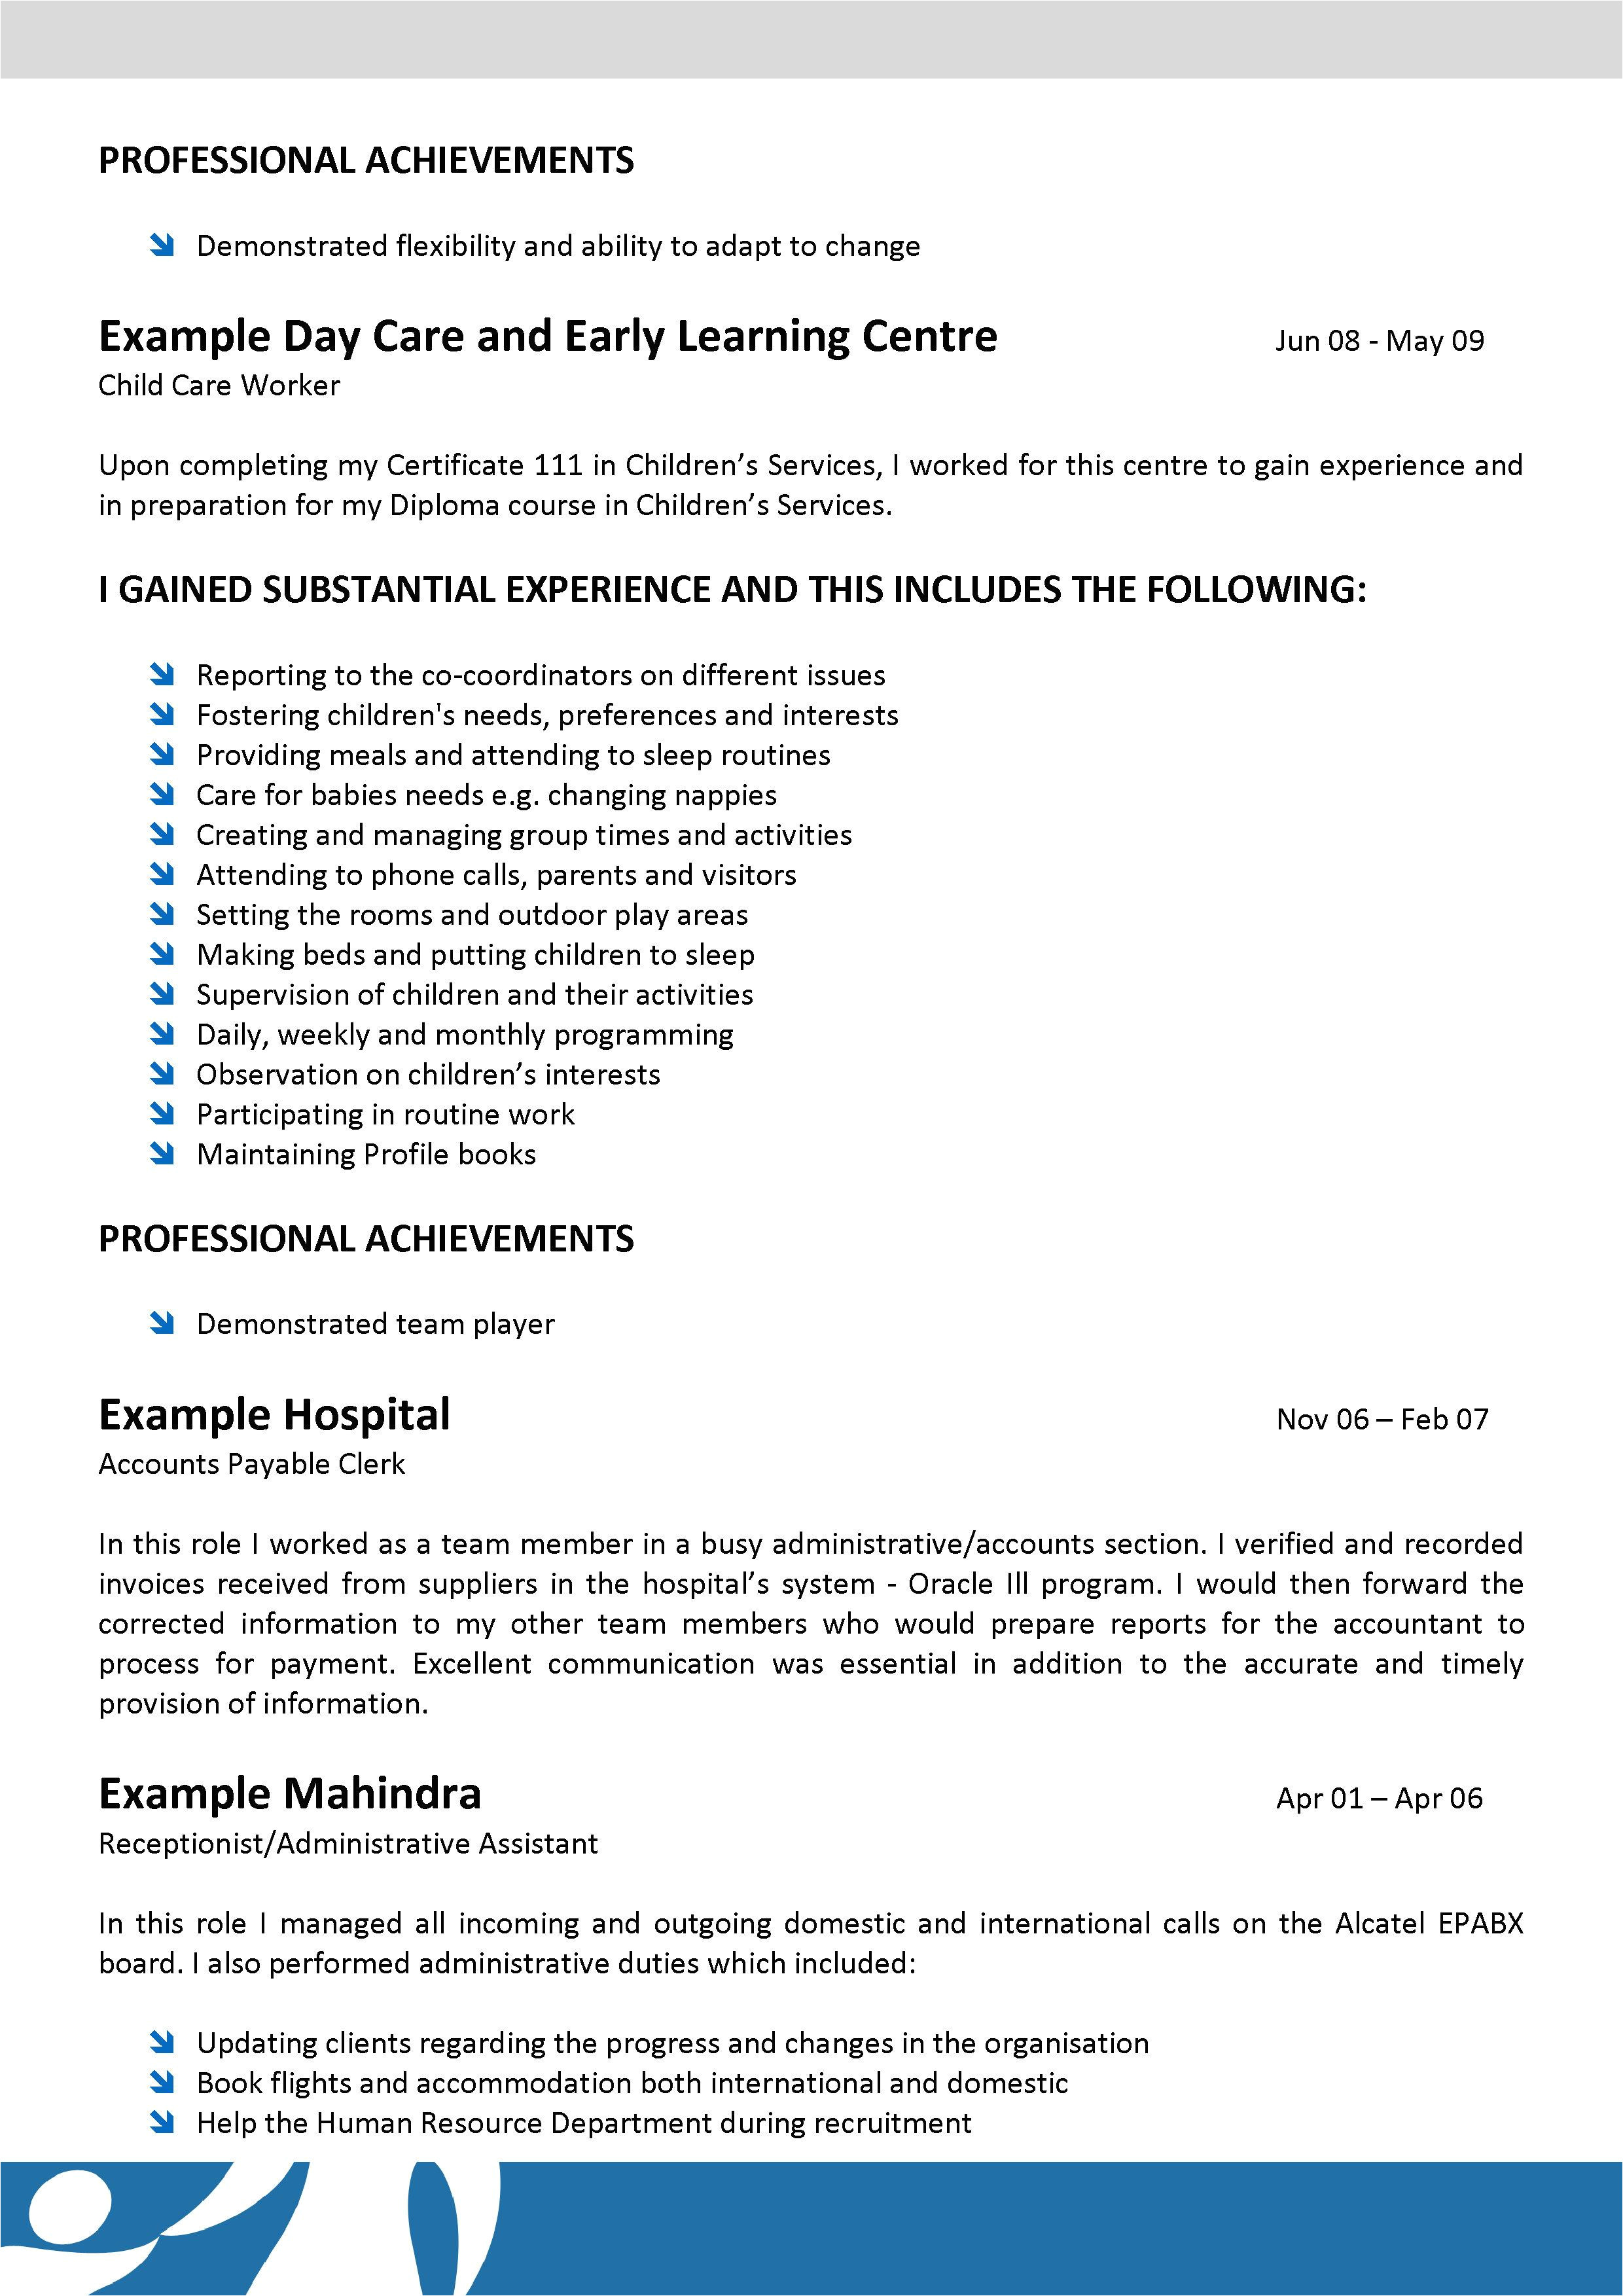 aged care nursing community resume template 005